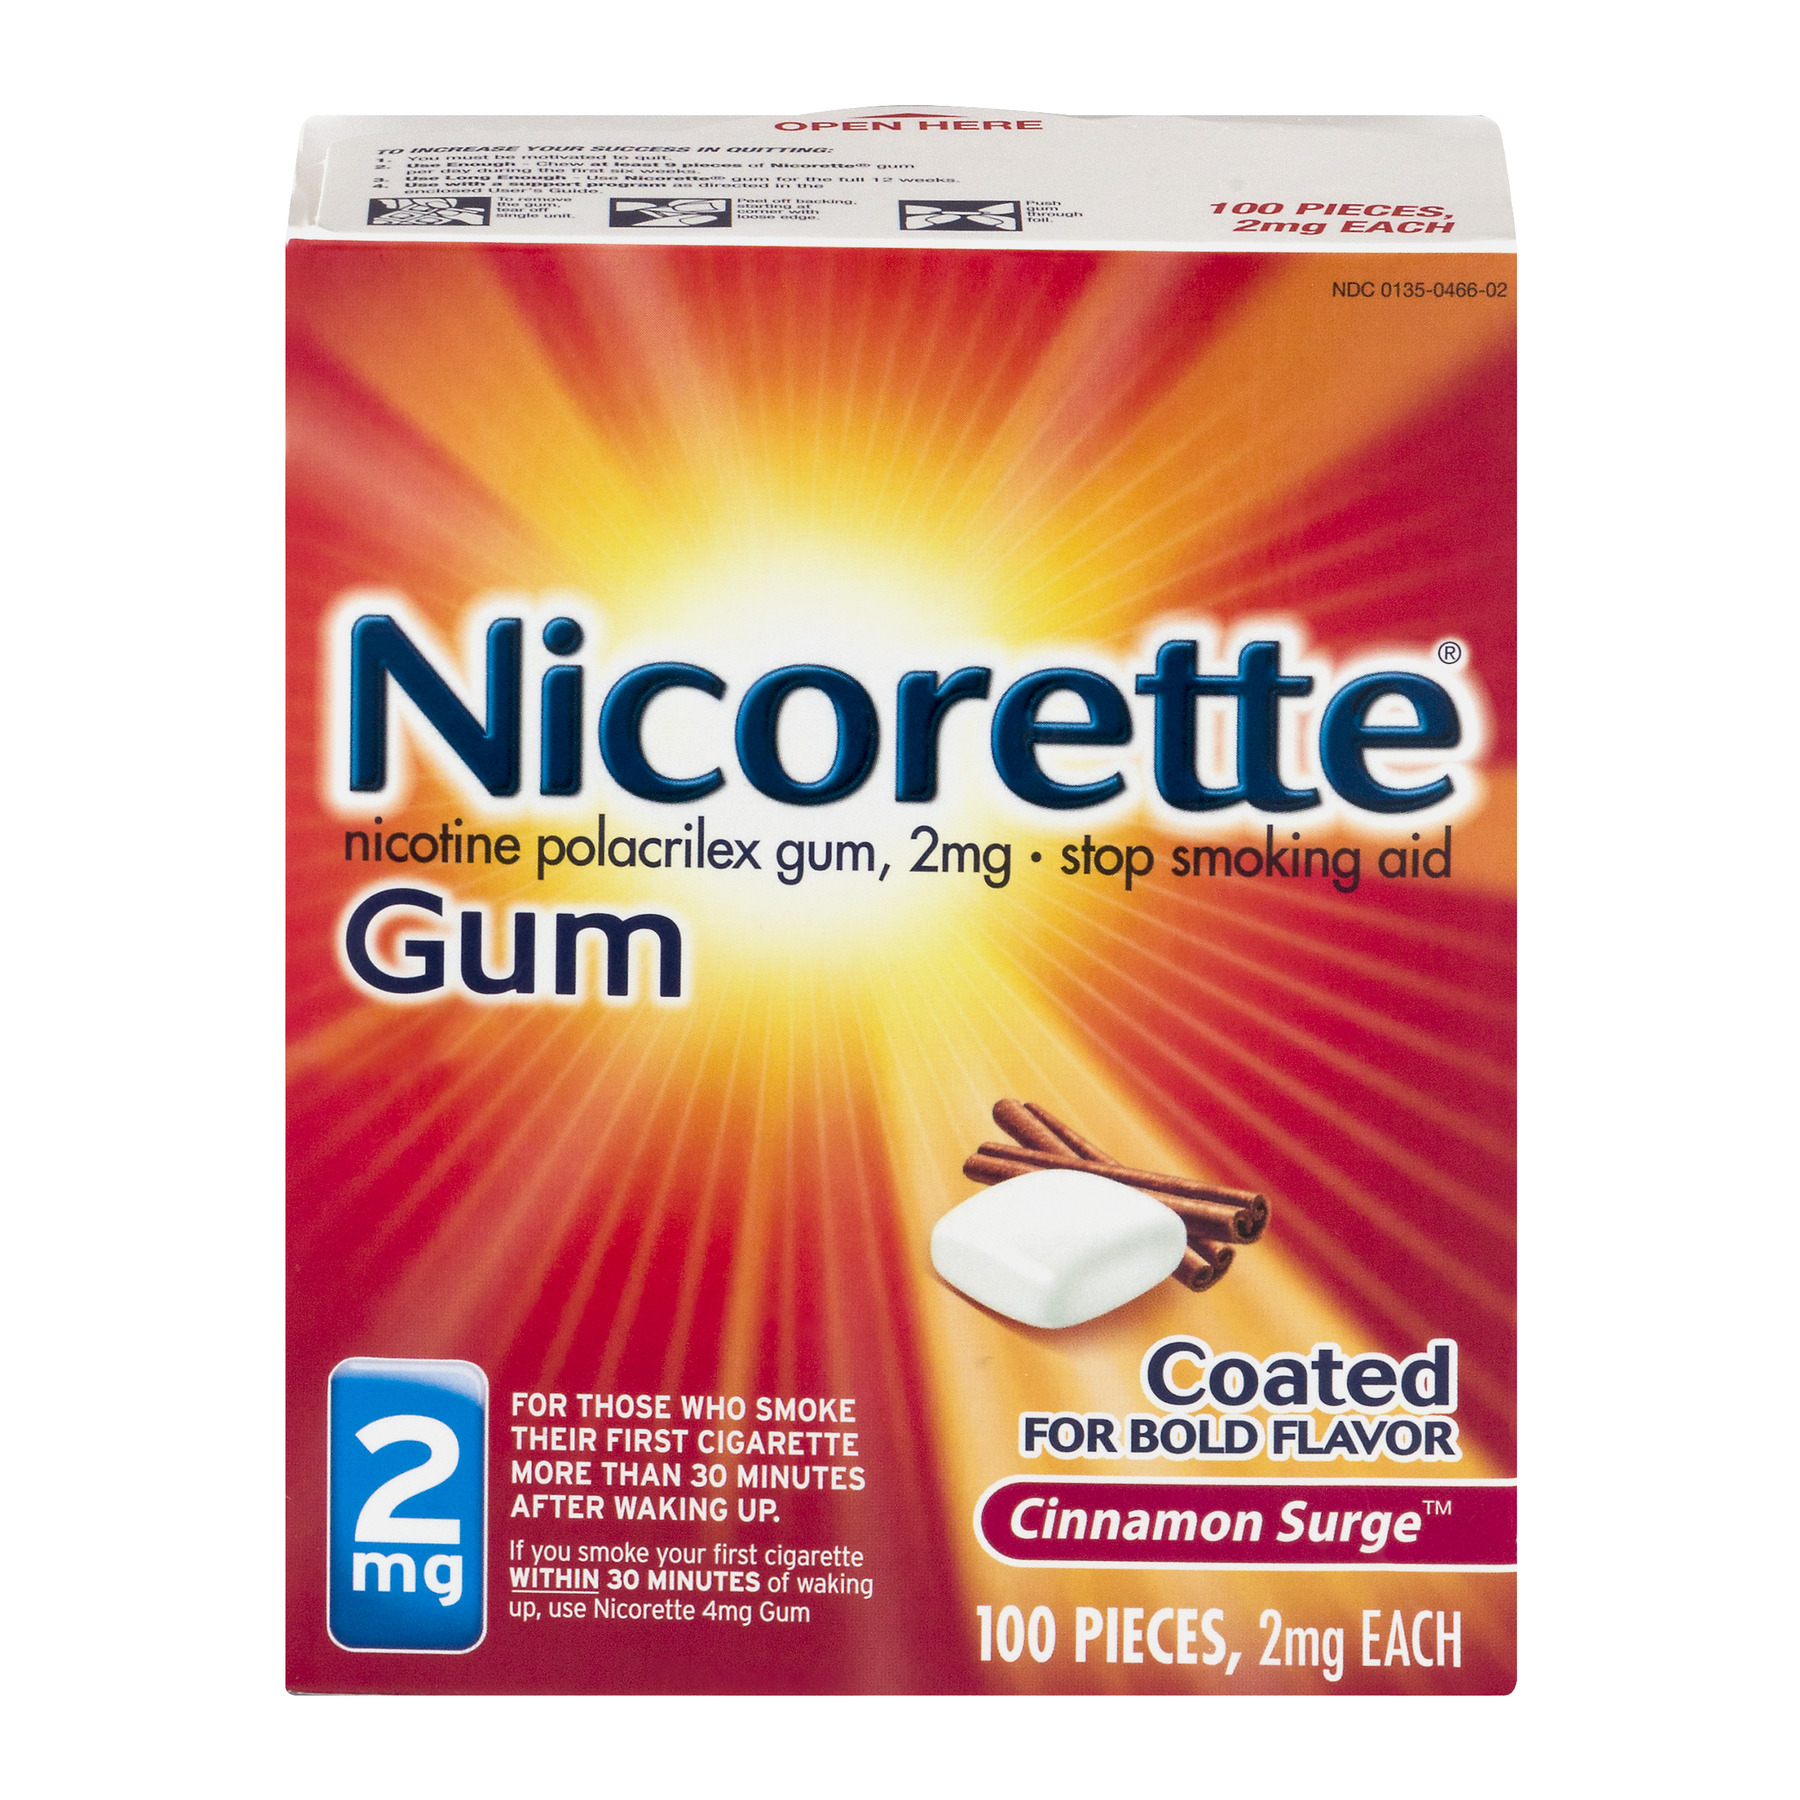 Nicorette Cinnamon Surge 2mg Stop Smoking Aid Gum 100 ct Box